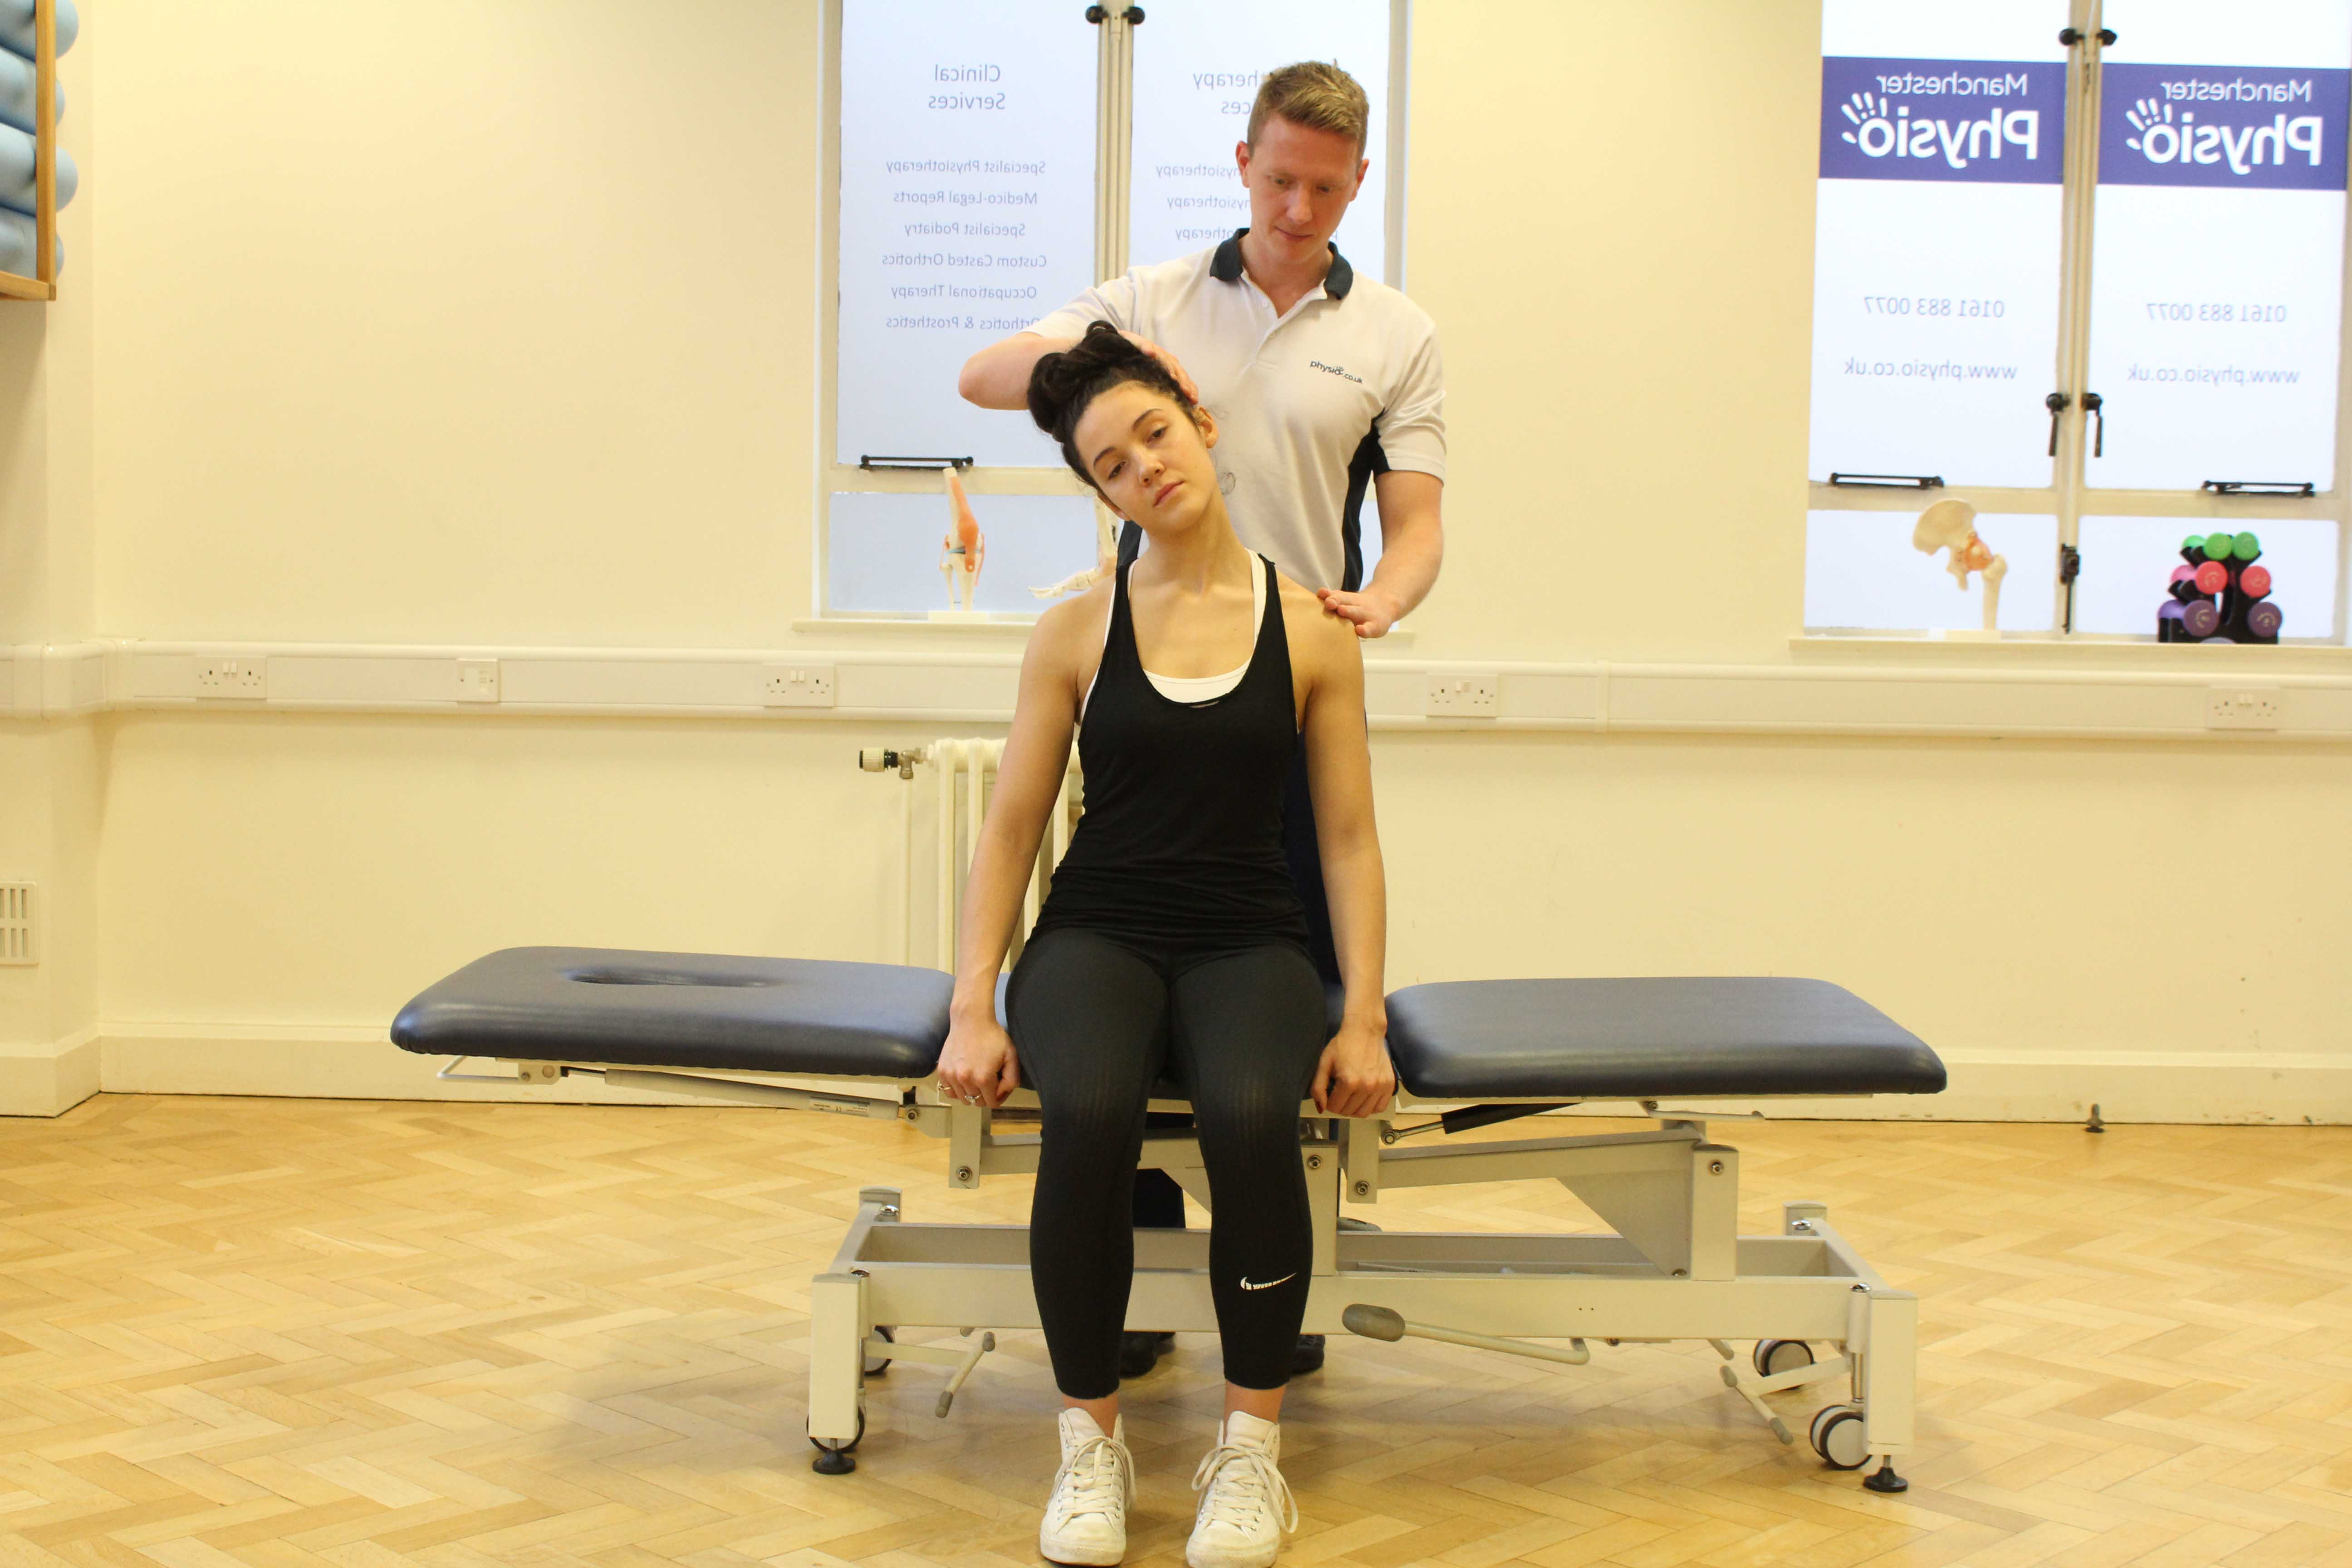 Assessment of the cervical spine, muscles and connective tissues in the neck performed by an experienced Physiotherapist